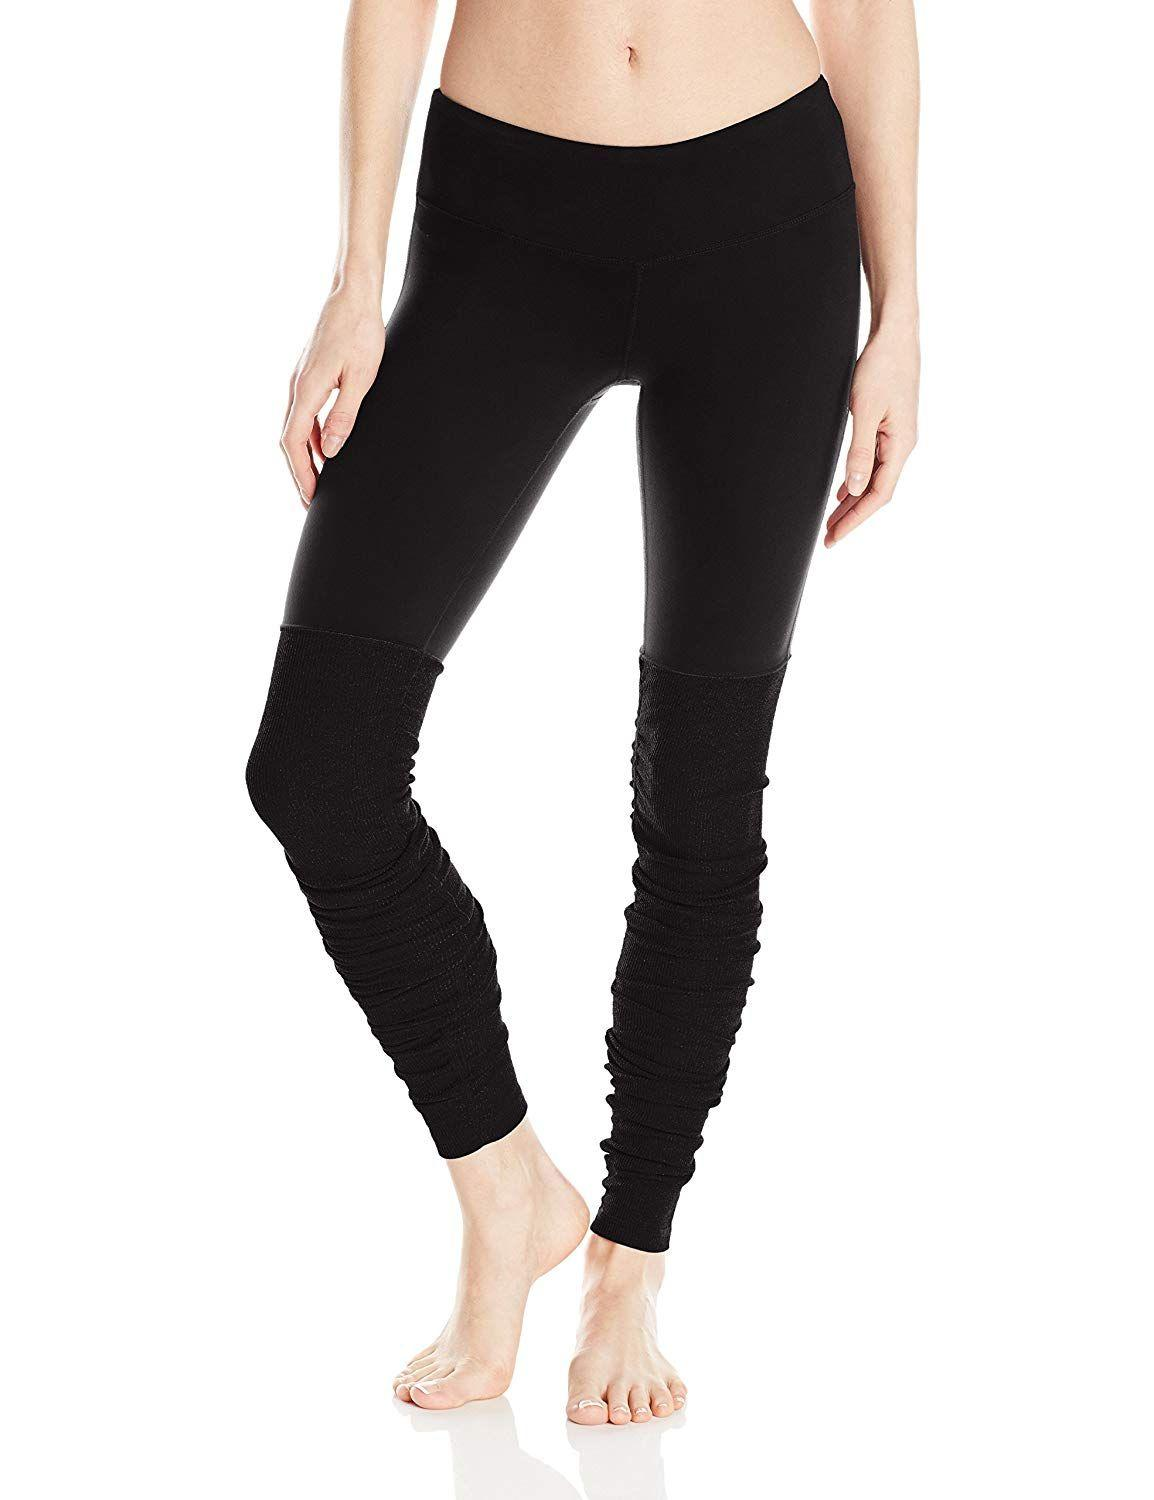 """<h3><a href=""""https://www.amazon.com/Alo-Yoga-Goddess-Legging-heather/dp/B00GM476RS"""" rel=""""nofollow noopener"""" target=""""_blank"""" data-ylk=""""slk:Alo Yoga Goddess Ribbed Legging"""" class=""""link rapid-noclick-resp"""">Alo Yoga Goddess Ribbed Legging</a></h3> <p>4.4 out of 5 stars and 277 reviews</p> <p><strong>Promising Review:</strong> For yogis, or those with an upcoming long haul flight, these just might be the pair for you. <a href=""""https://www.amazon.com/gp/customer-reviews/R3FA84JQ3KXQYP"""" rel=""""nofollow noopener"""" target=""""_blank"""" data-ylk=""""slk:Gina"""" class=""""link rapid-noclick-resp"""">Gina</a> writes, """"I practice Ashtanga yoga and """"vinyasa"""" yoga, usually unheated or only very slightly heated, so I am often cold at the beginning of practice and would like something to cover my feet without full on wearing socks. These are my new favorite pair of leggings. ...I am not the type to wear yoga leggings unless I am doing yoga or some other physical activity, but I do like to wear them if I am on long haul flights. I wore these on 14 hour international flights and have no regrets. They kept me warm and comfortable on the plane...""""</p> <br> <br> <strong>Alo Yoga</strong> Goddess Ribbed Legging, $80.16, available at <a href=""""https://www.amazon.com/Alo-Yoga-Goddess-Legging-heather/dp/B00GM476RS"""" rel=""""nofollow noopener"""" target=""""_blank"""" data-ylk=""""slk:Amazon"""" class=""""link rapid-noclick-resp"""">Amazon</a>"""